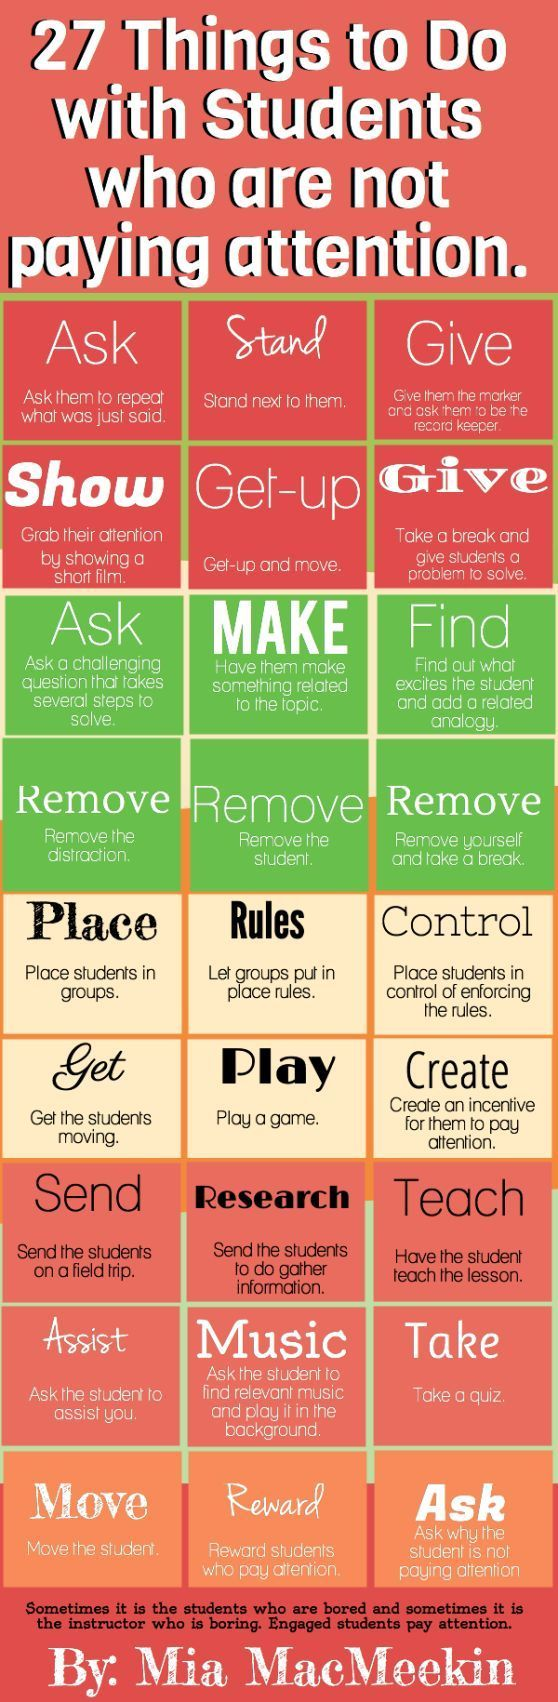 This is a list of ways to engage student who are off-task or not paying attention. I like that it focuses on positive ways to get students to participate rather than giving the student negative feedback. The list includes quick ways to change up instruction to grab students' attention. -Tracy Healey